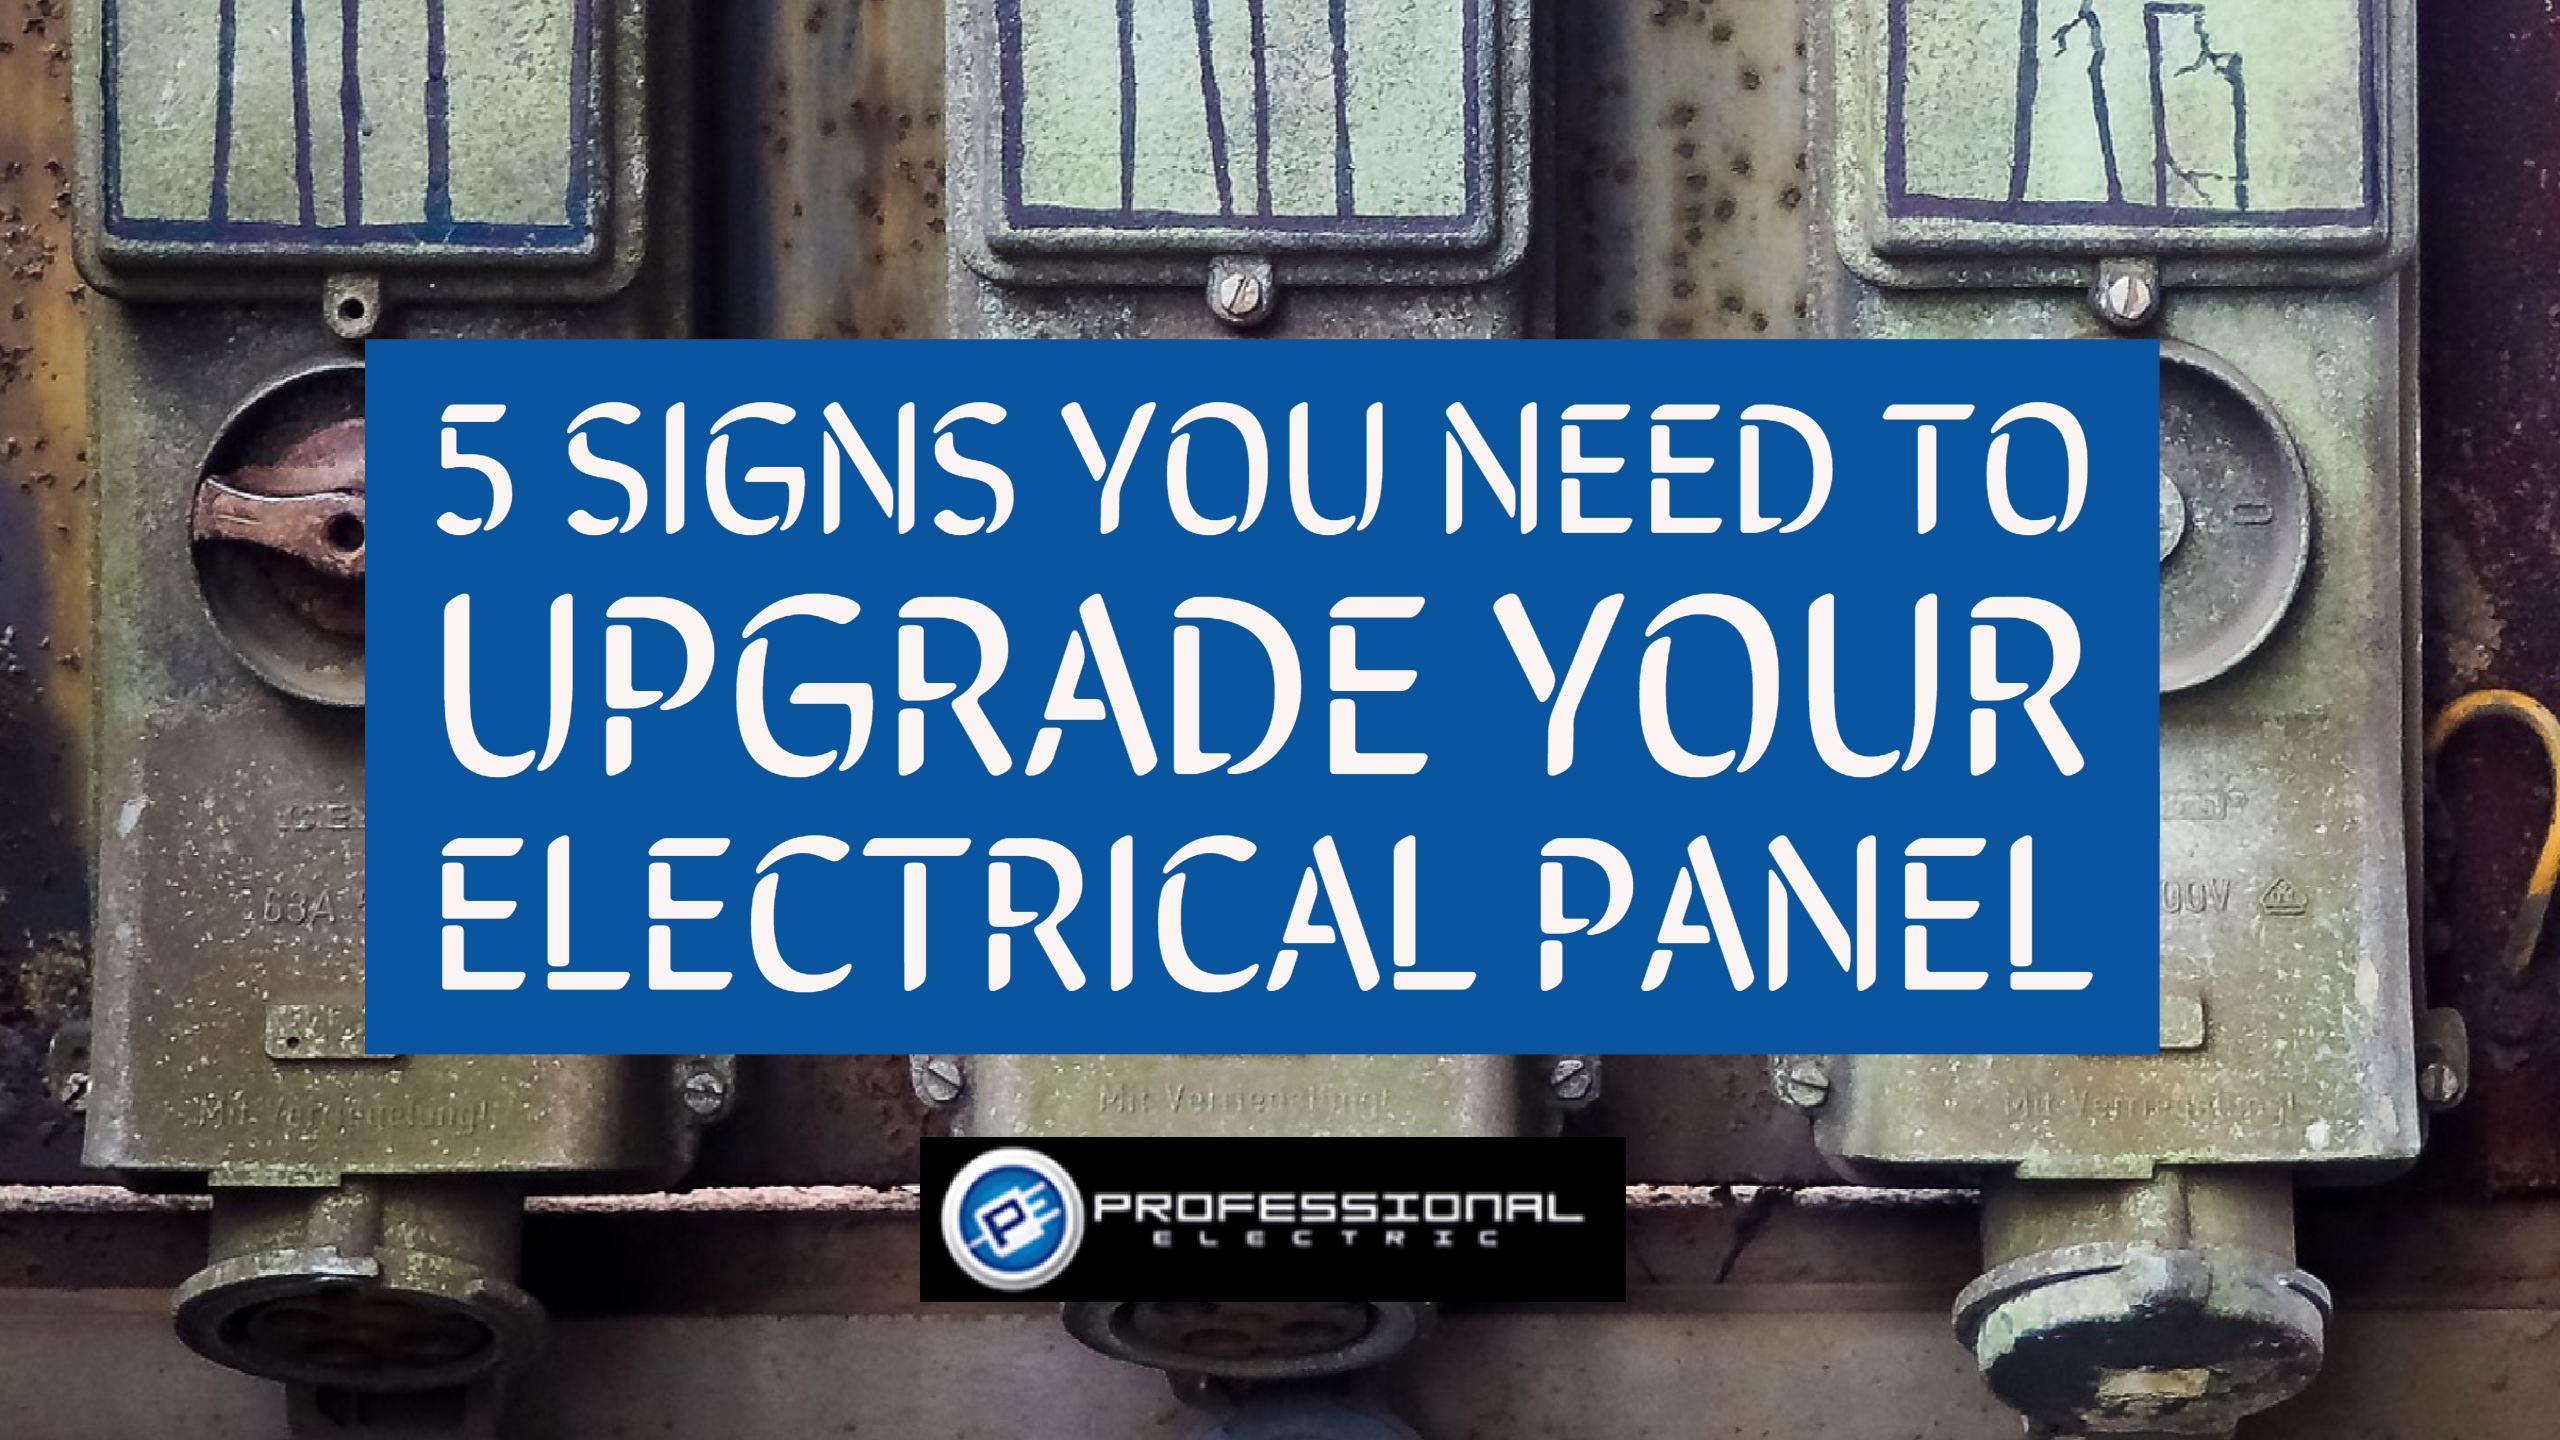 5 Signs You Need To Upgrade Your Electrical Panels